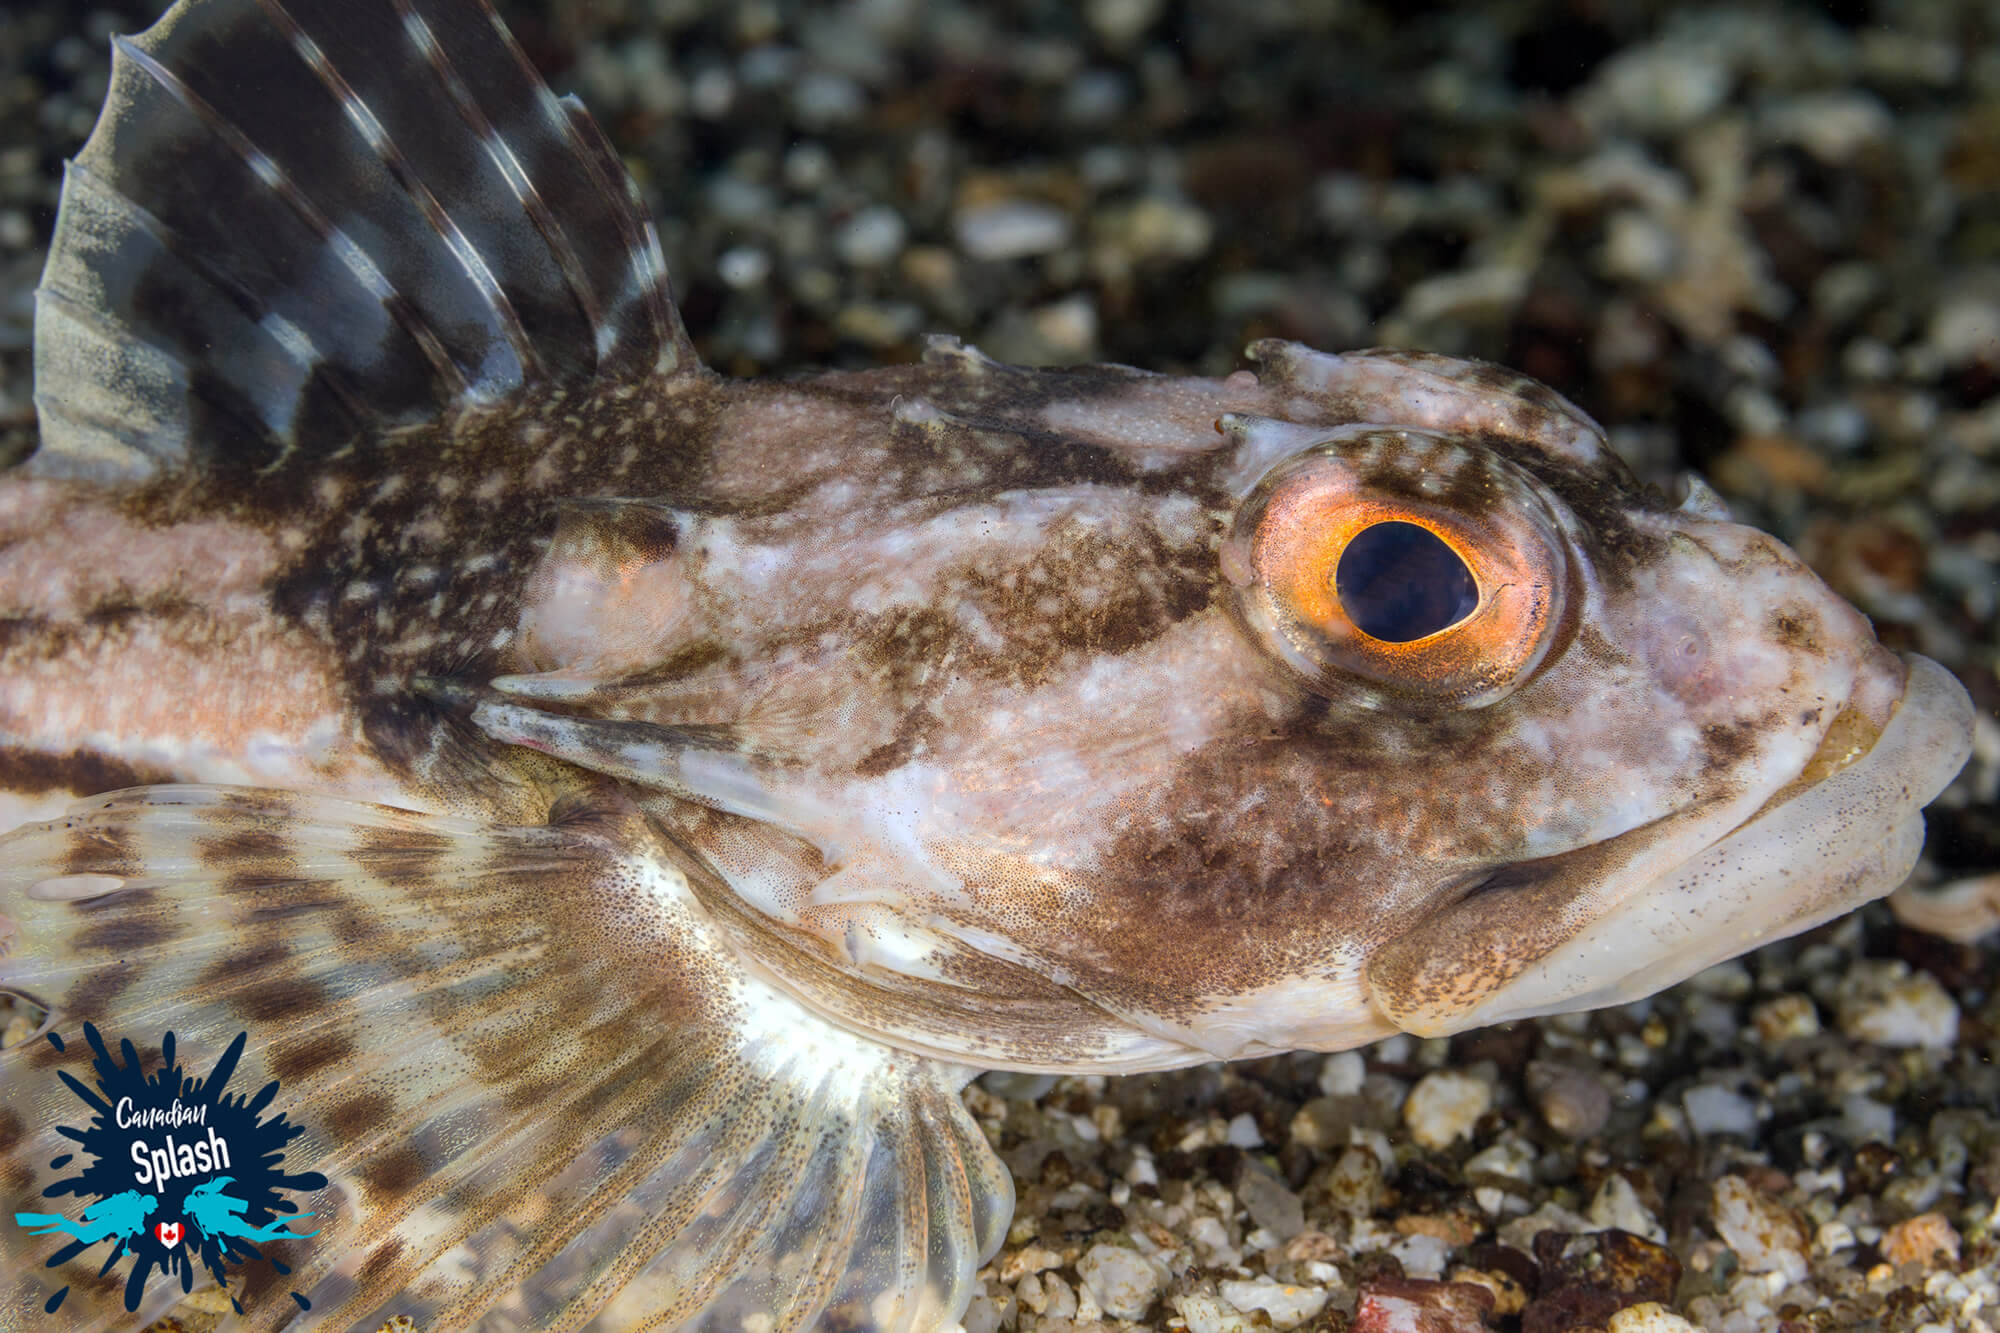 A side View from Underwater of a Grey and Brown Sculpin with Orange Eyes in Halifax, Nova Scotia, Canada's East Coast